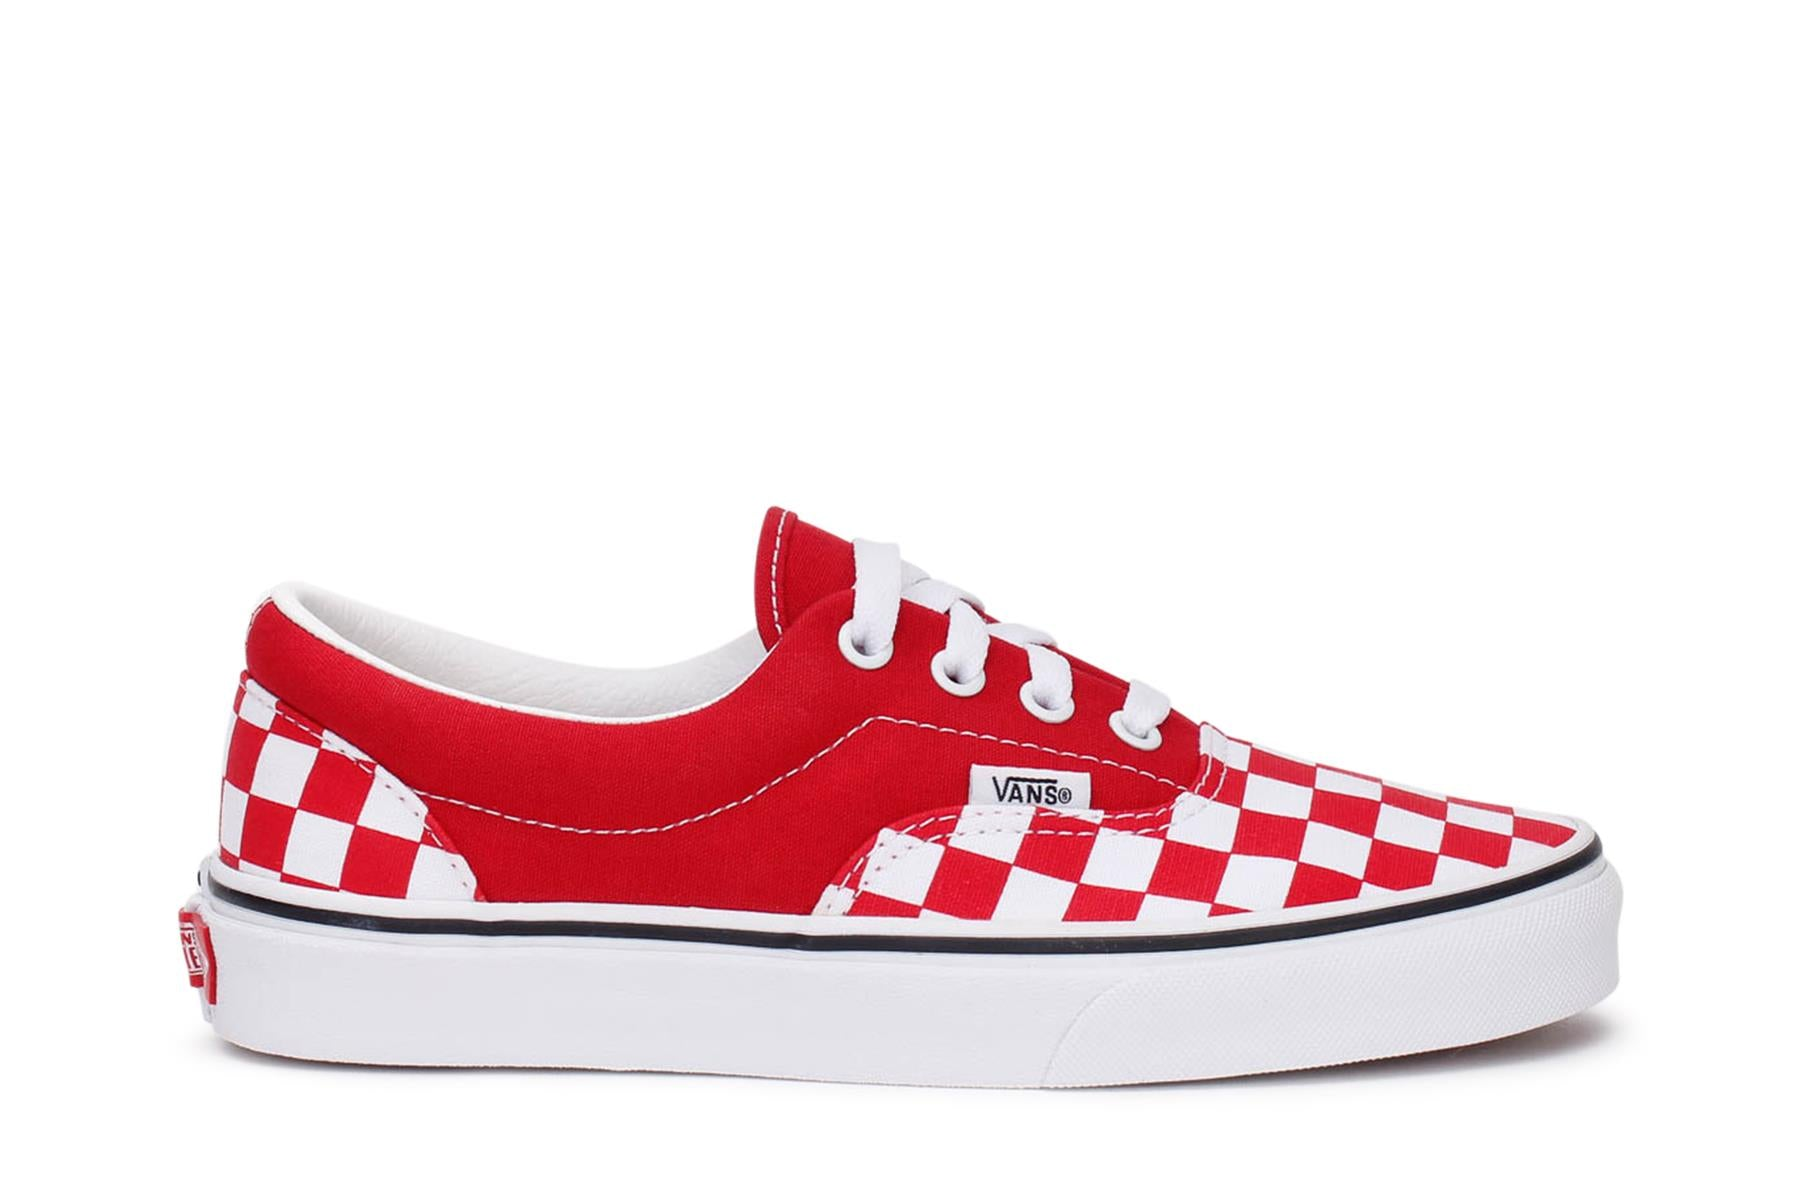 vans-mens-sneakers-era-checkerboard-racing-red-true-white-vn0a4bv4s4e-main